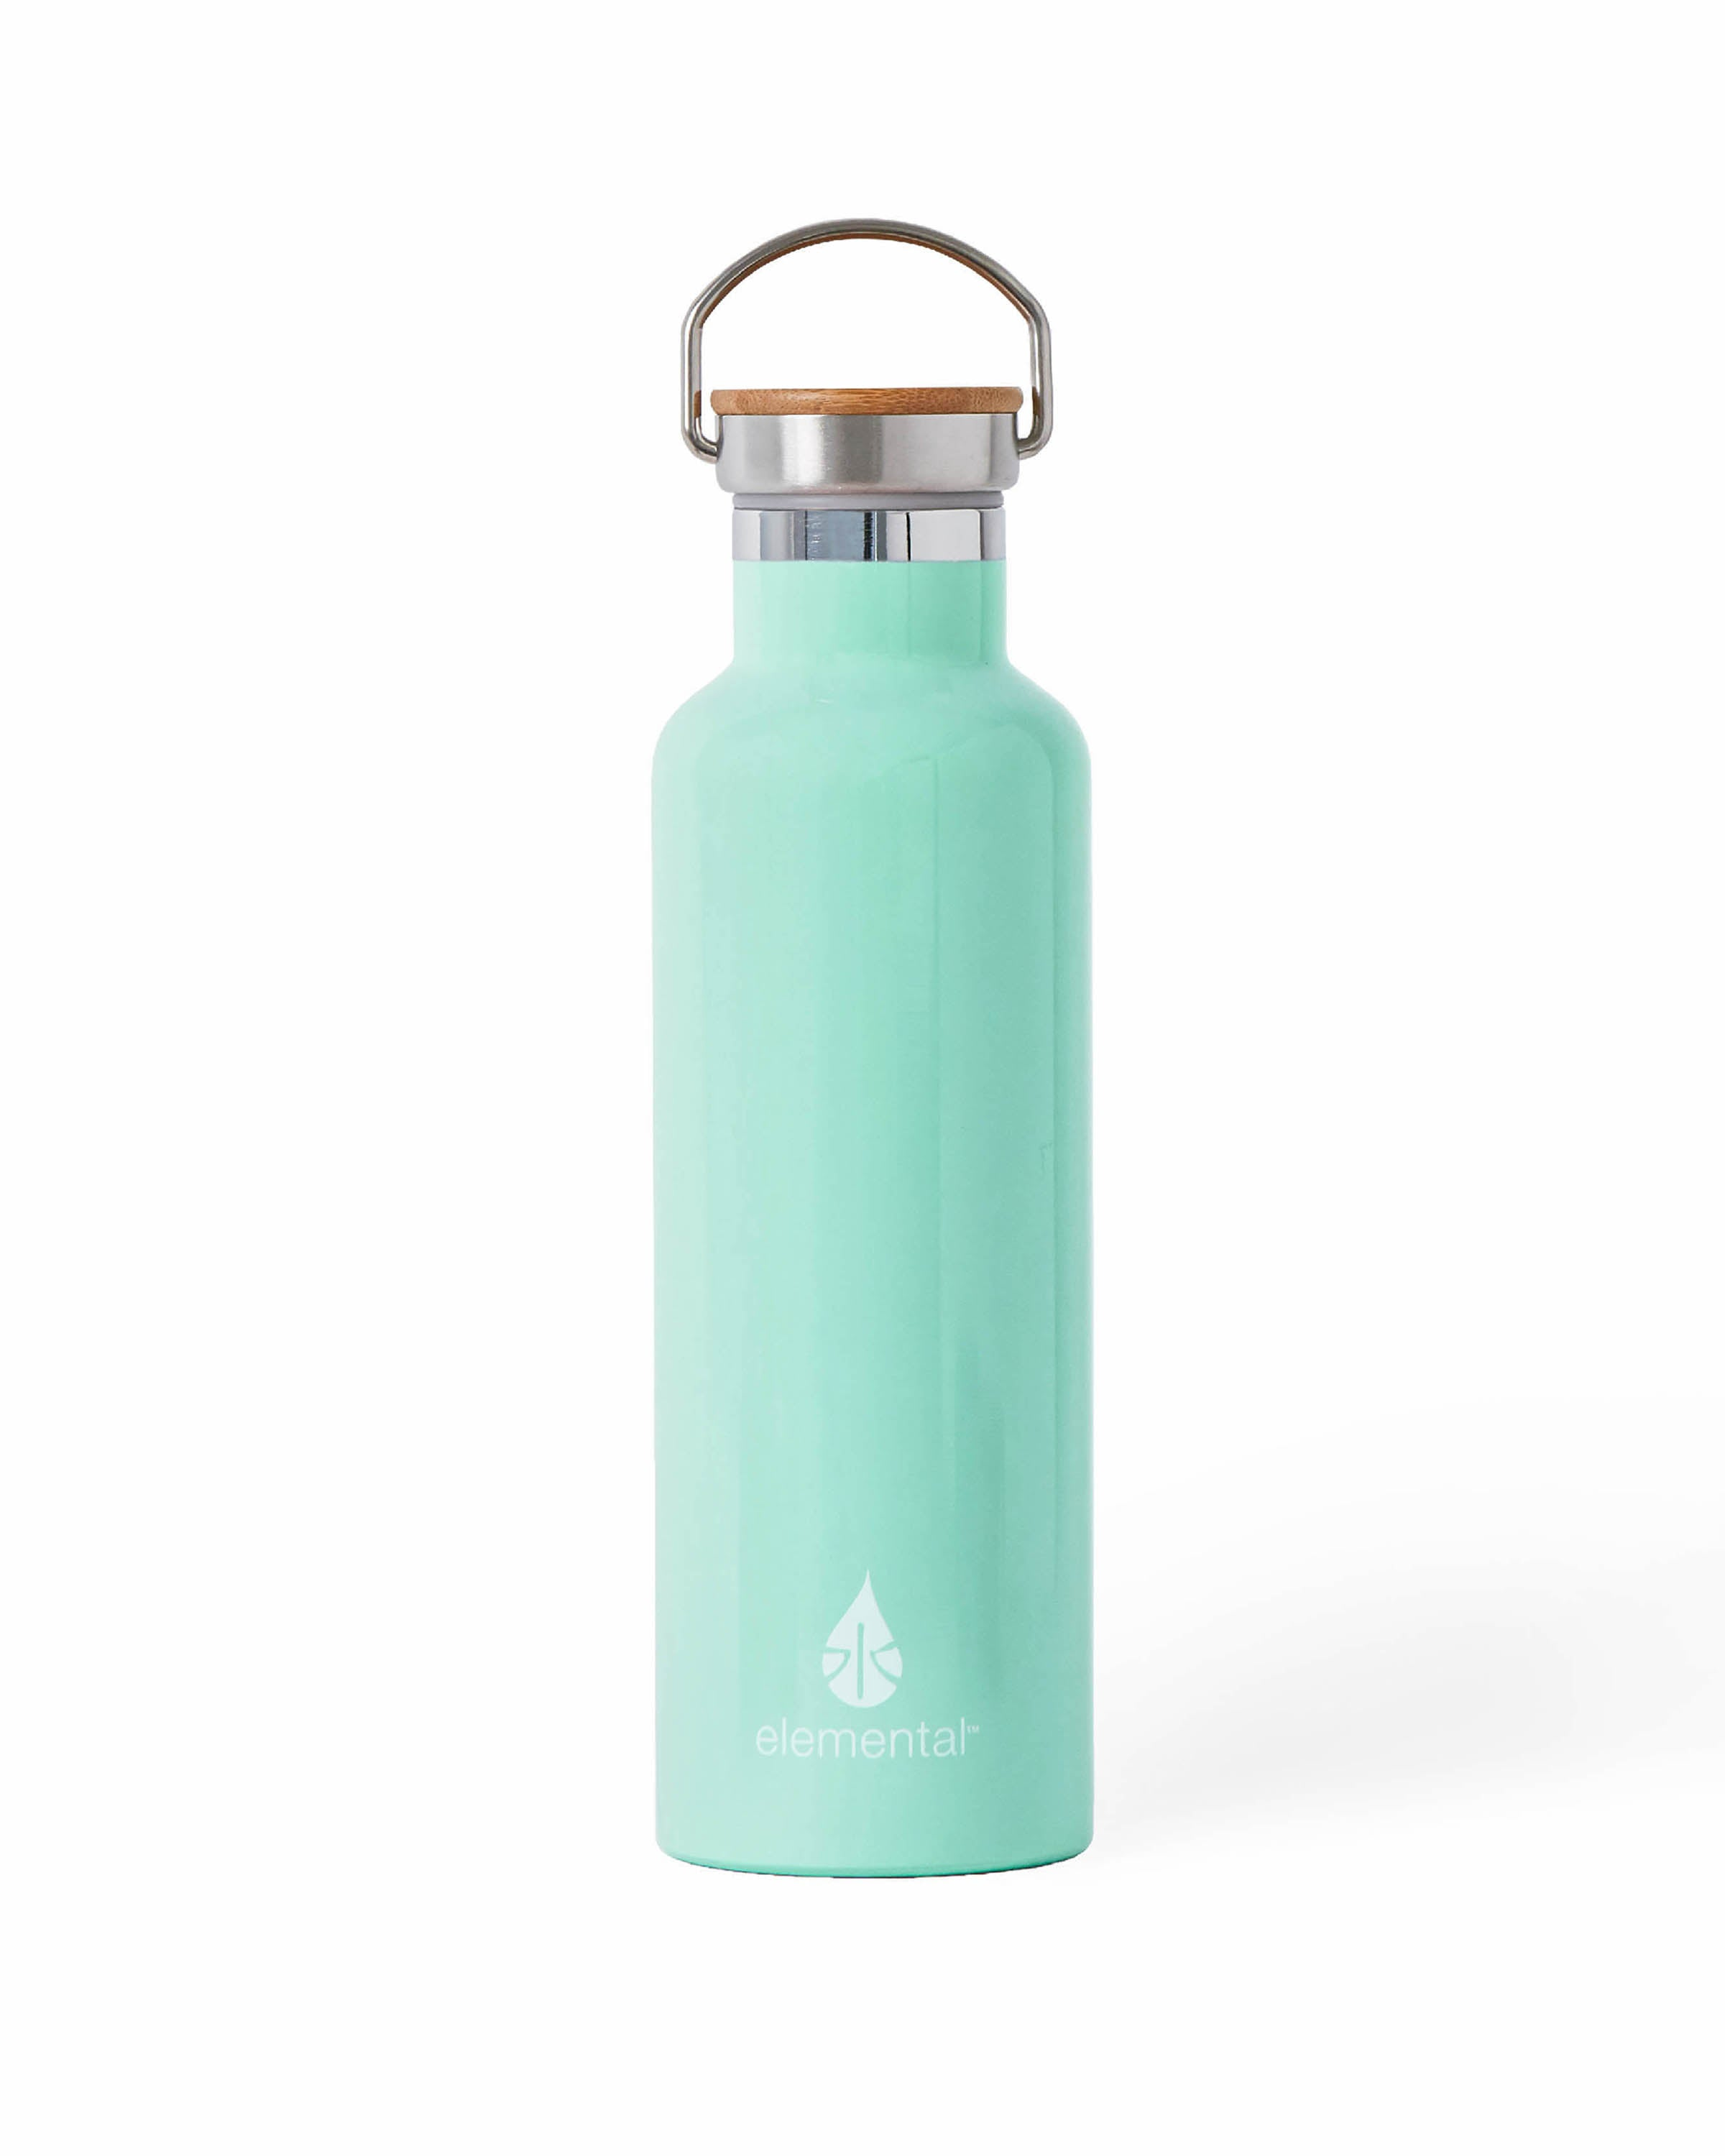 Elemental Stainless Steel Water Bottle 25oz (750ml) - Bamboo Cap